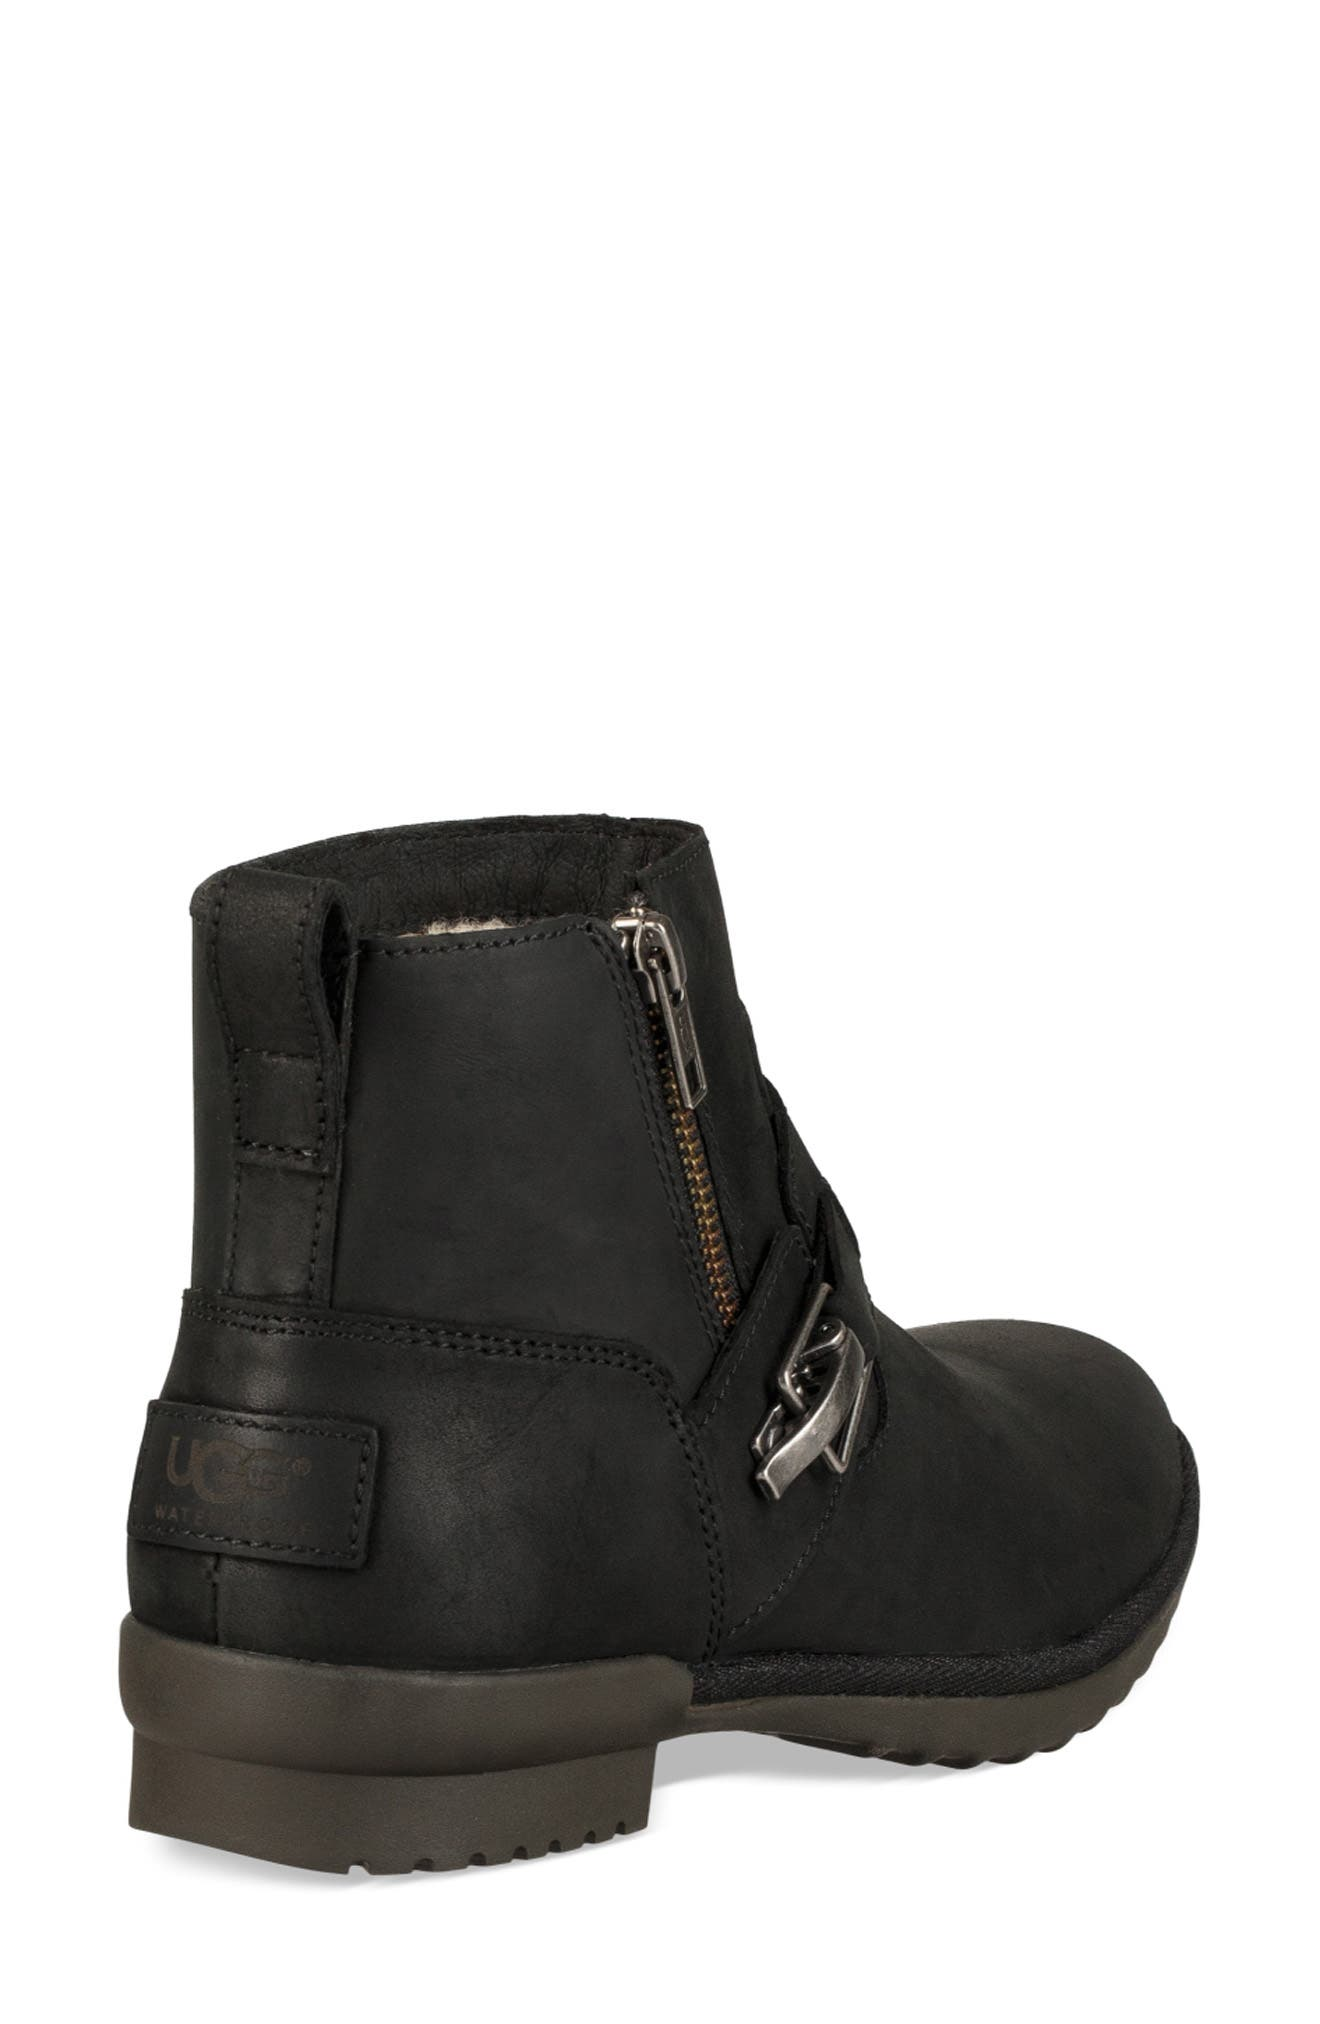 Cheyne Bootie,                             Alternate thumbnail 2, color,                             BLACK LEATHER